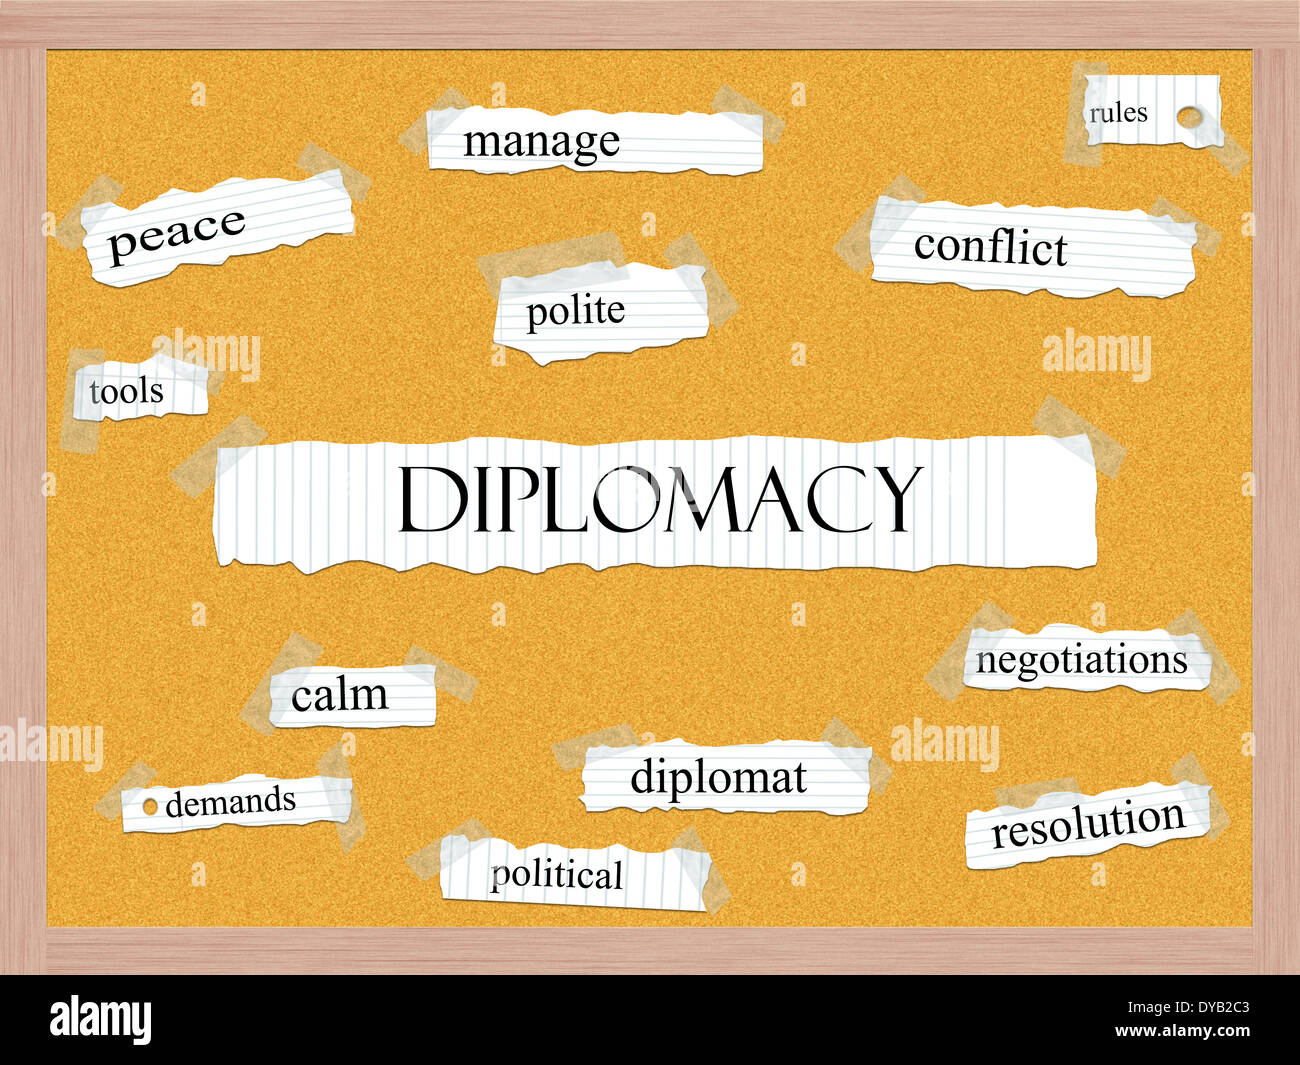 Diplomacy Corkboard Word Concept with great terms such as manage, conflict, peace and more. - Stock Image